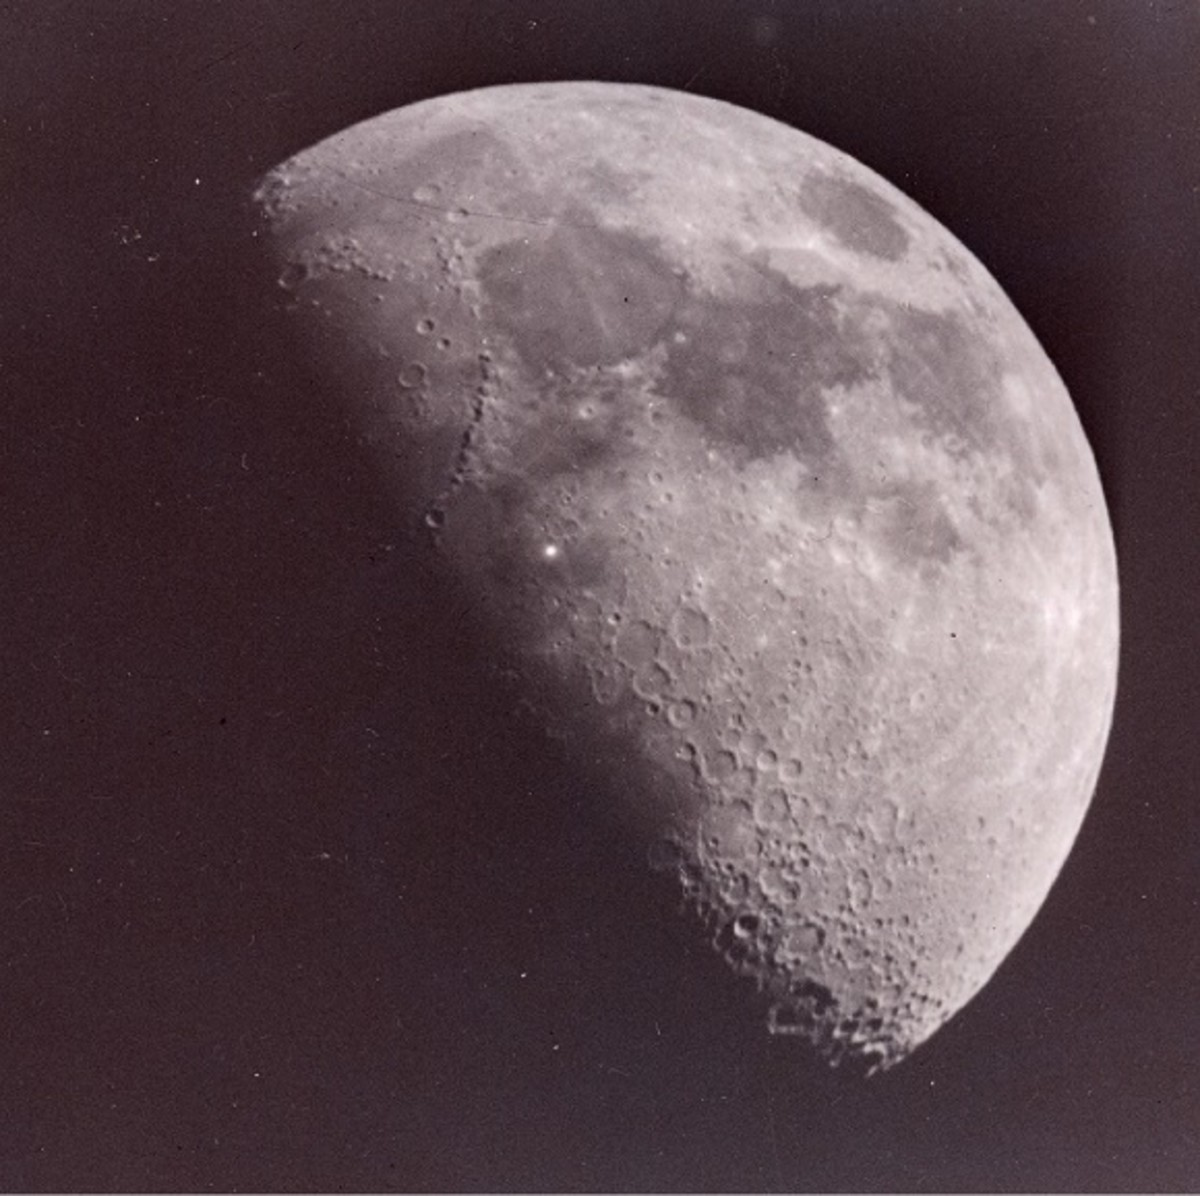 Astronomer Leon Stuart's photo of the Moon with mystery white speck taken on 15 November, 1953.